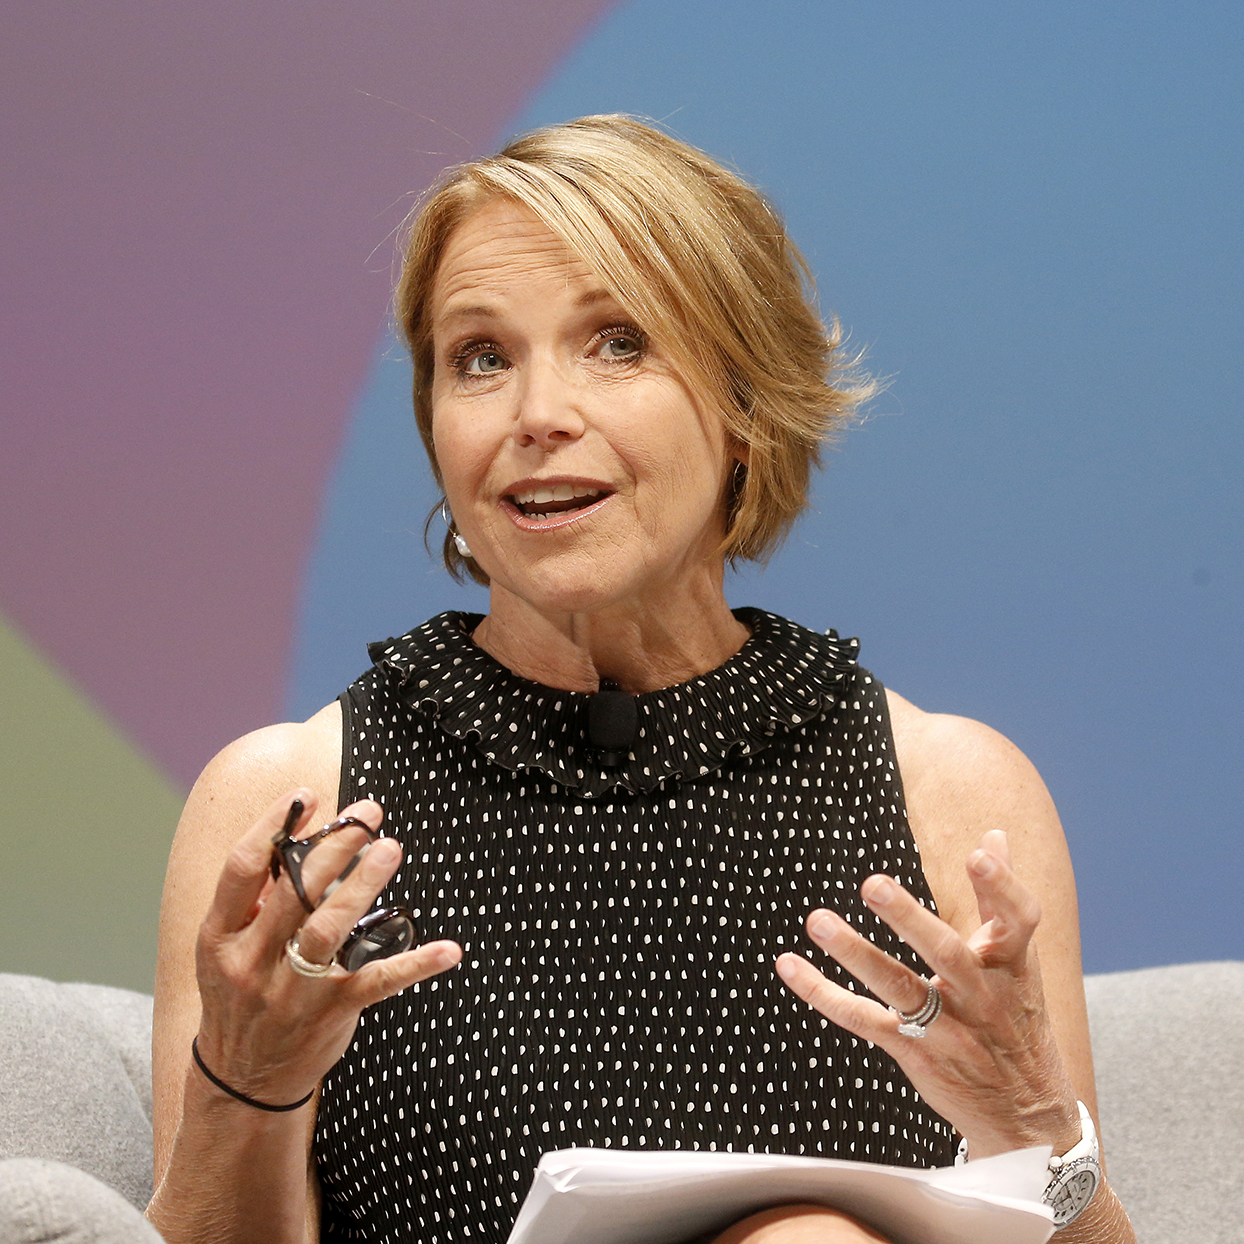 Journalist Katie Couric speaks on stage during P&G session at the Cannes Lions 2019 : Day Three on June 19, 2019 in Cannes, France